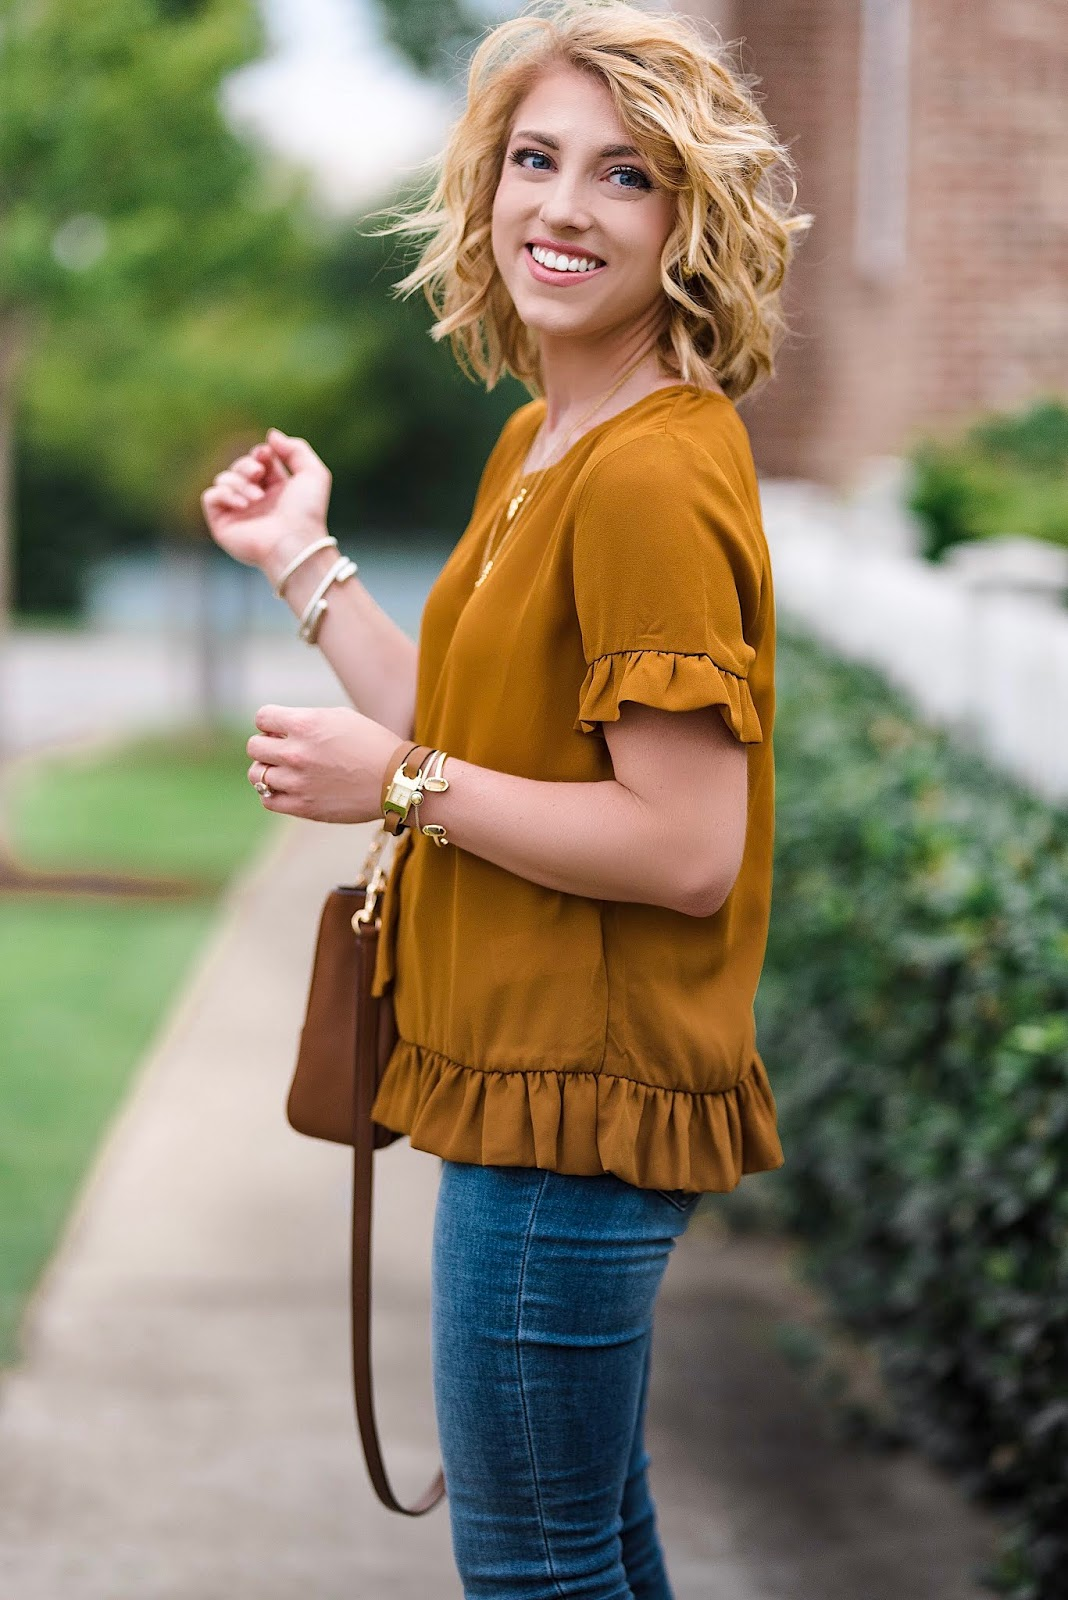 $40 Ruffle Detail Top + Nordstrom Anniversary Sale Jeans & Shoes - Something Delightful Blog